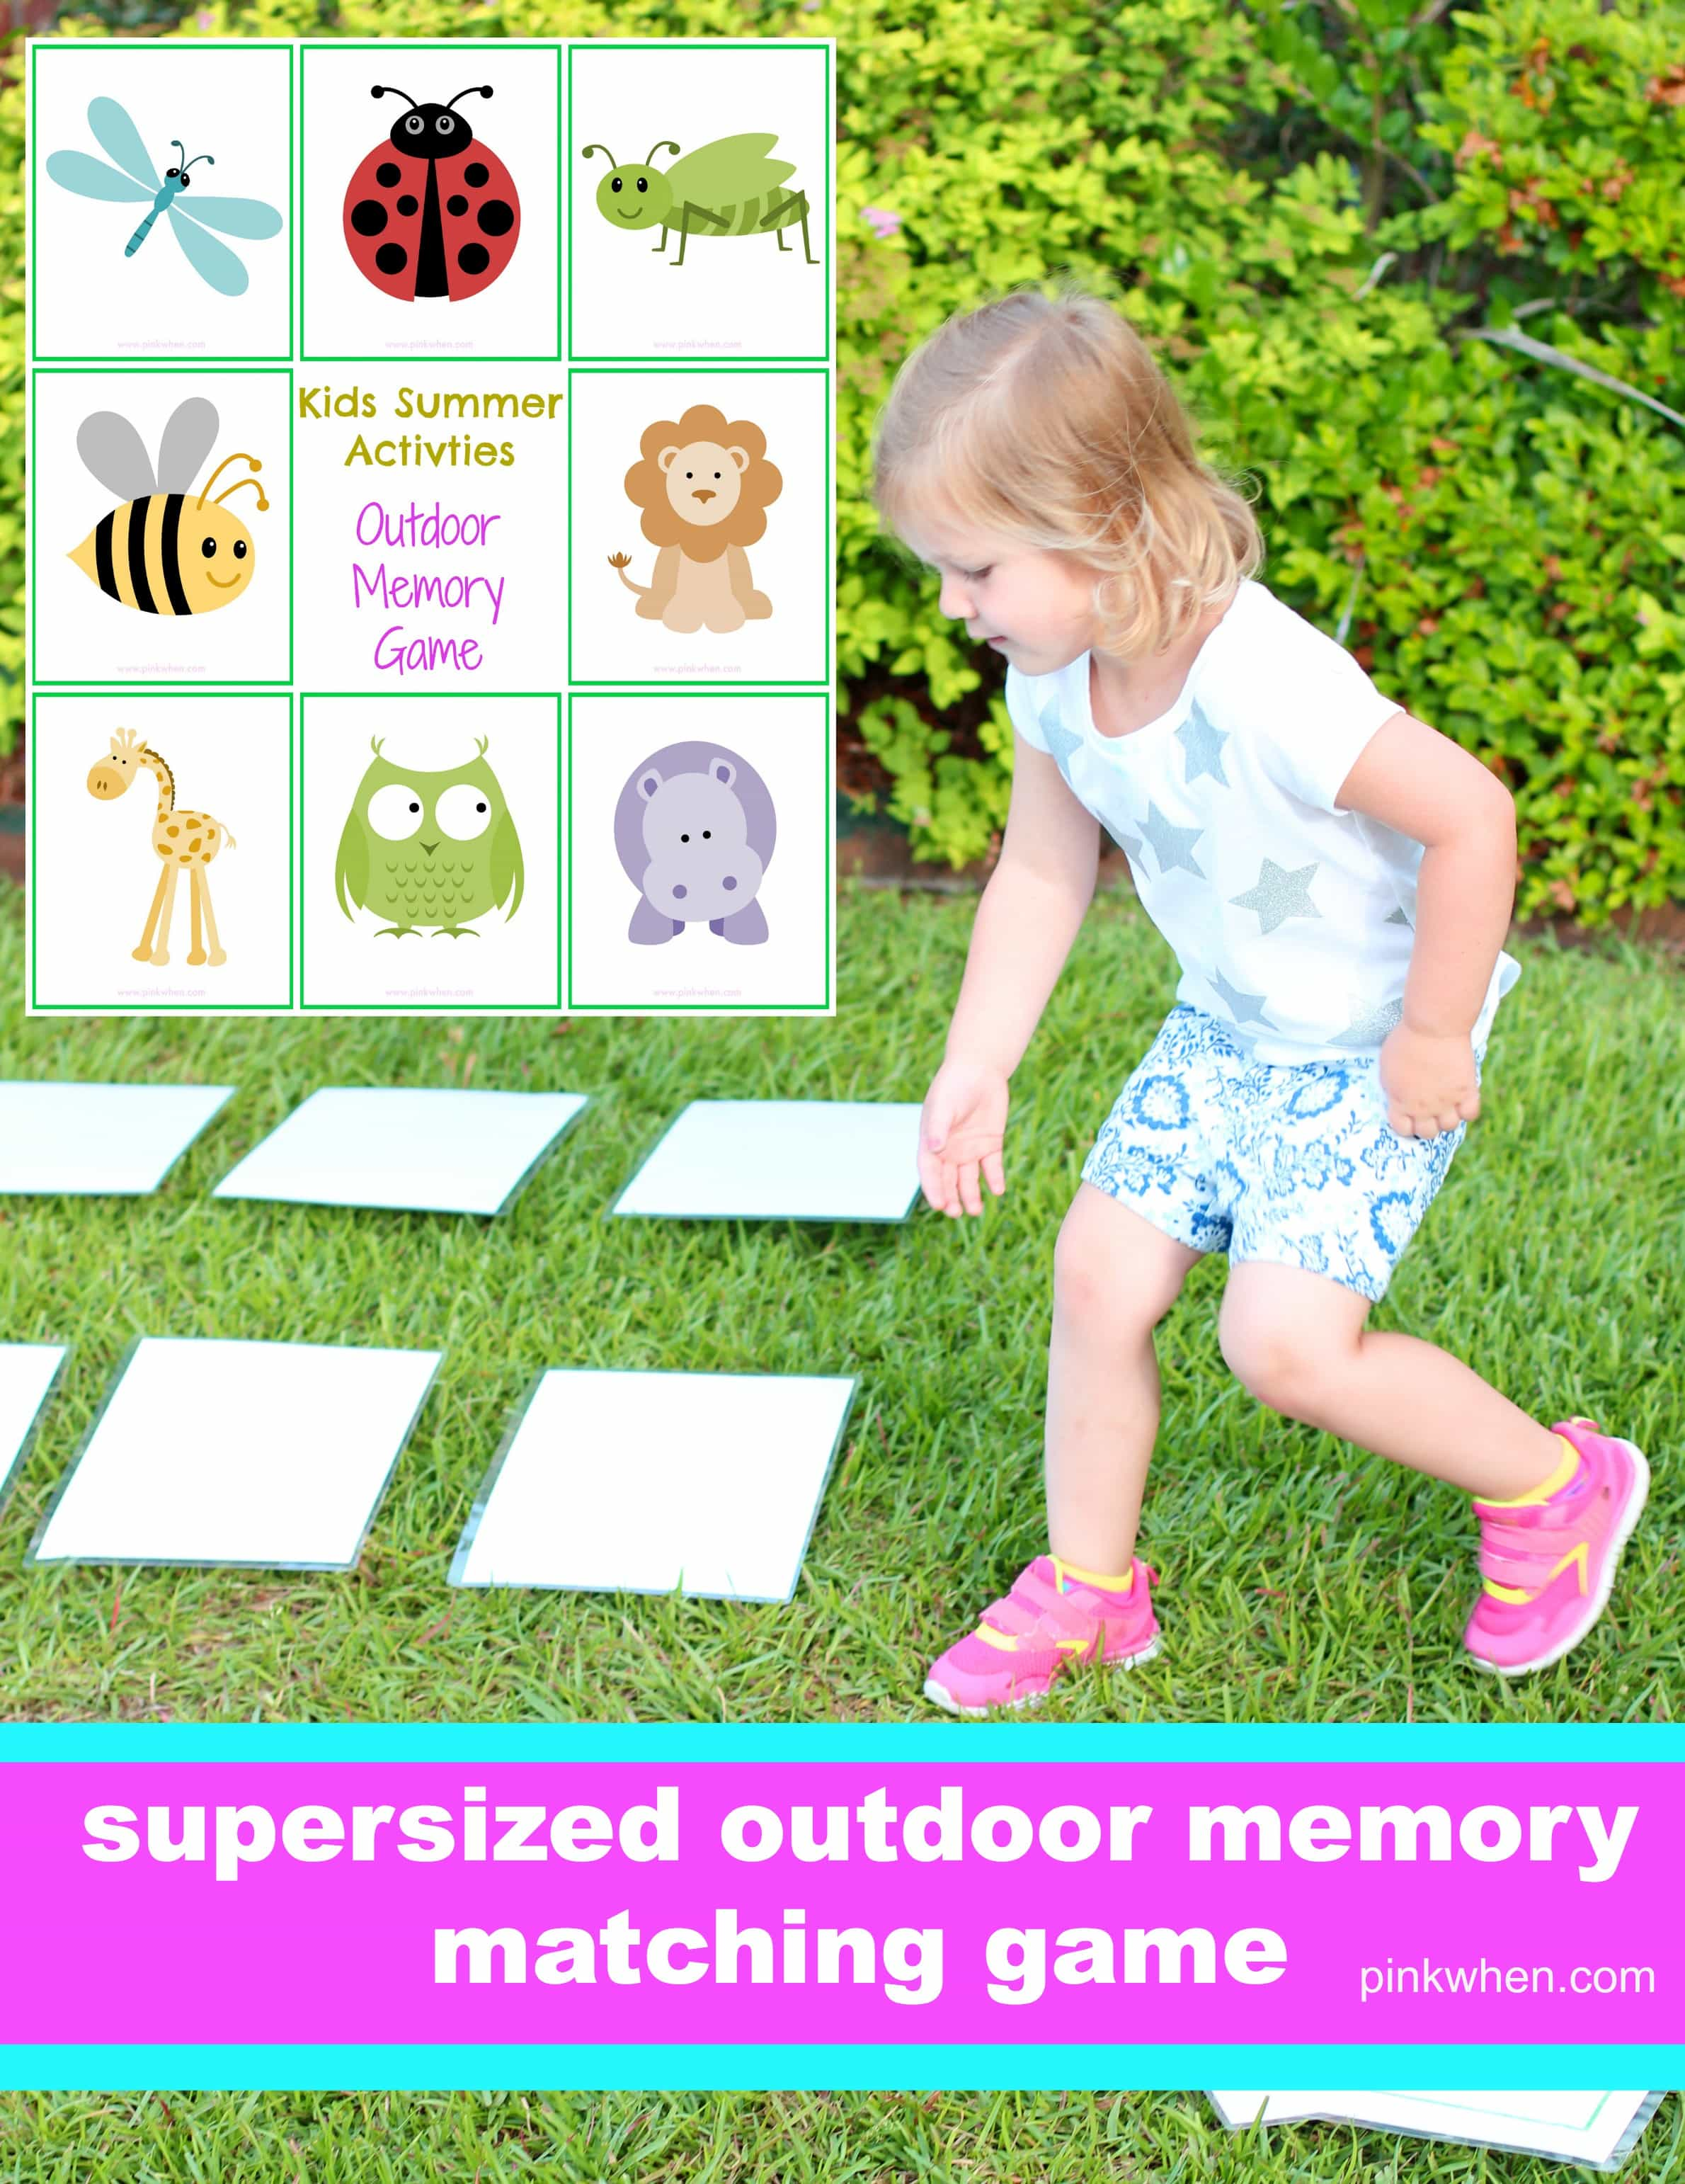 Outdoor Memory Game Page 2 of 2 PinkWhen